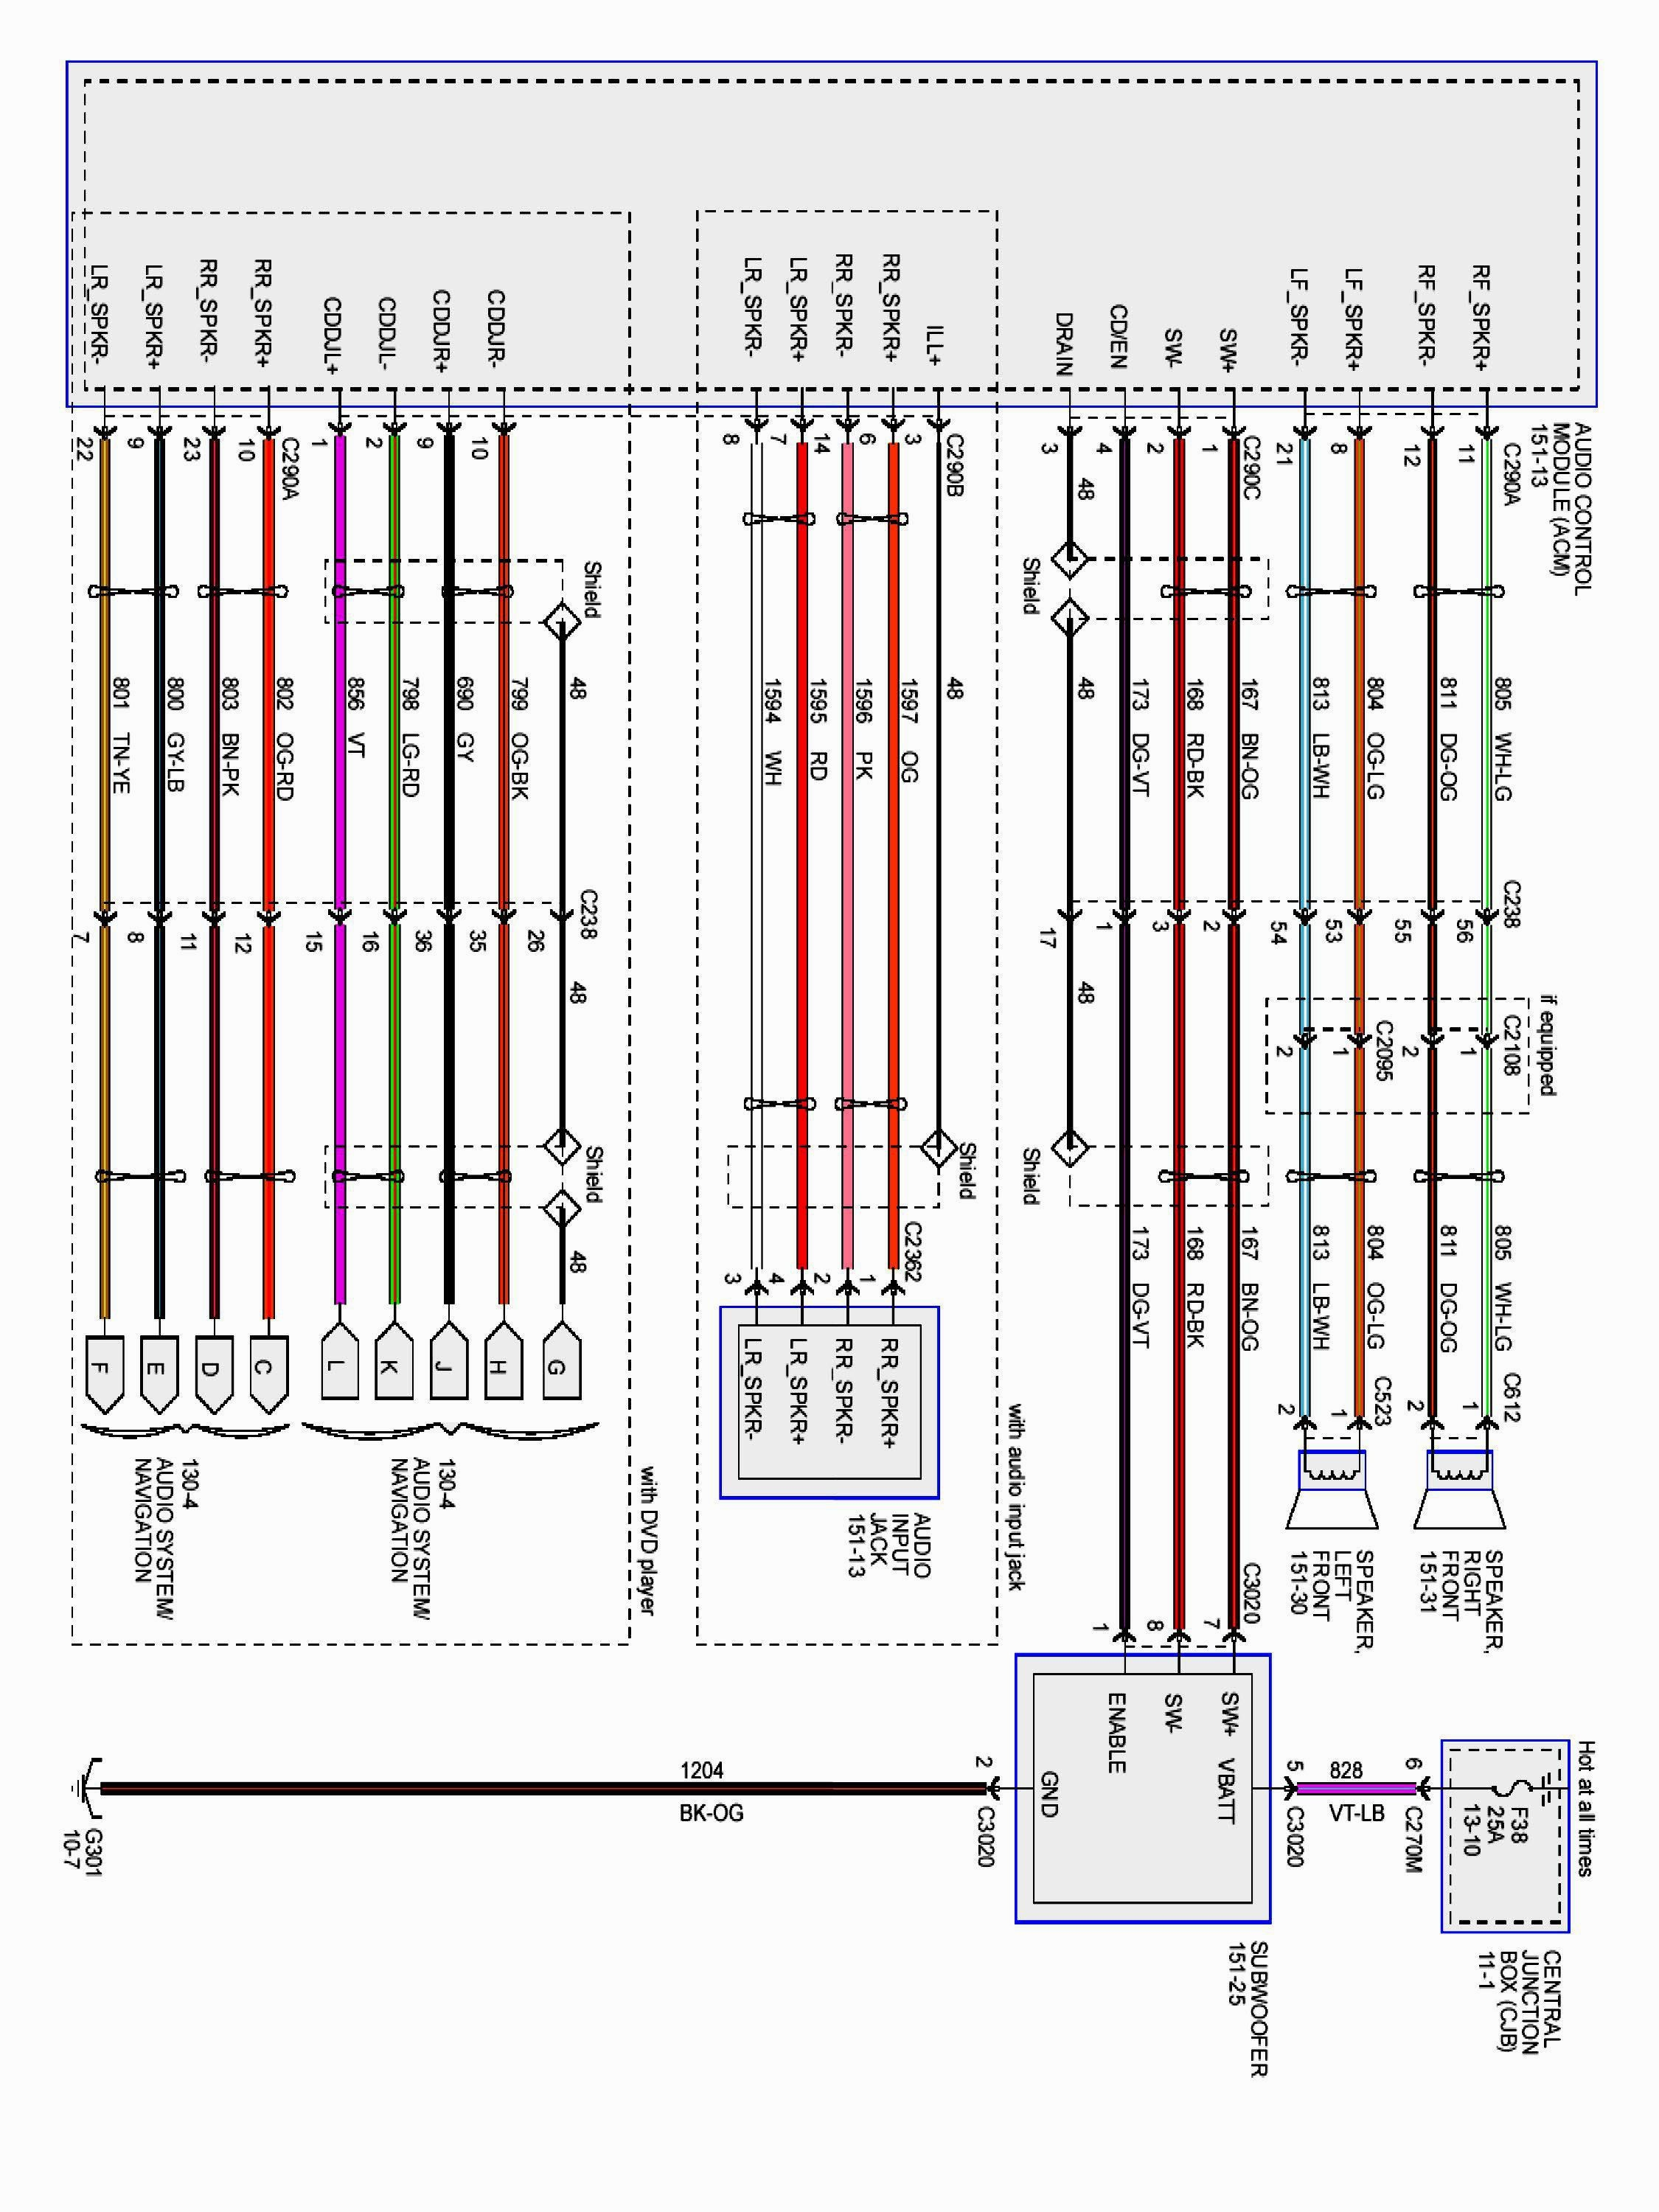 2001 Audi A4 Radio Wiring Diagram New 2004 Audi A4 Stereo Wiring Diagram Save New ford